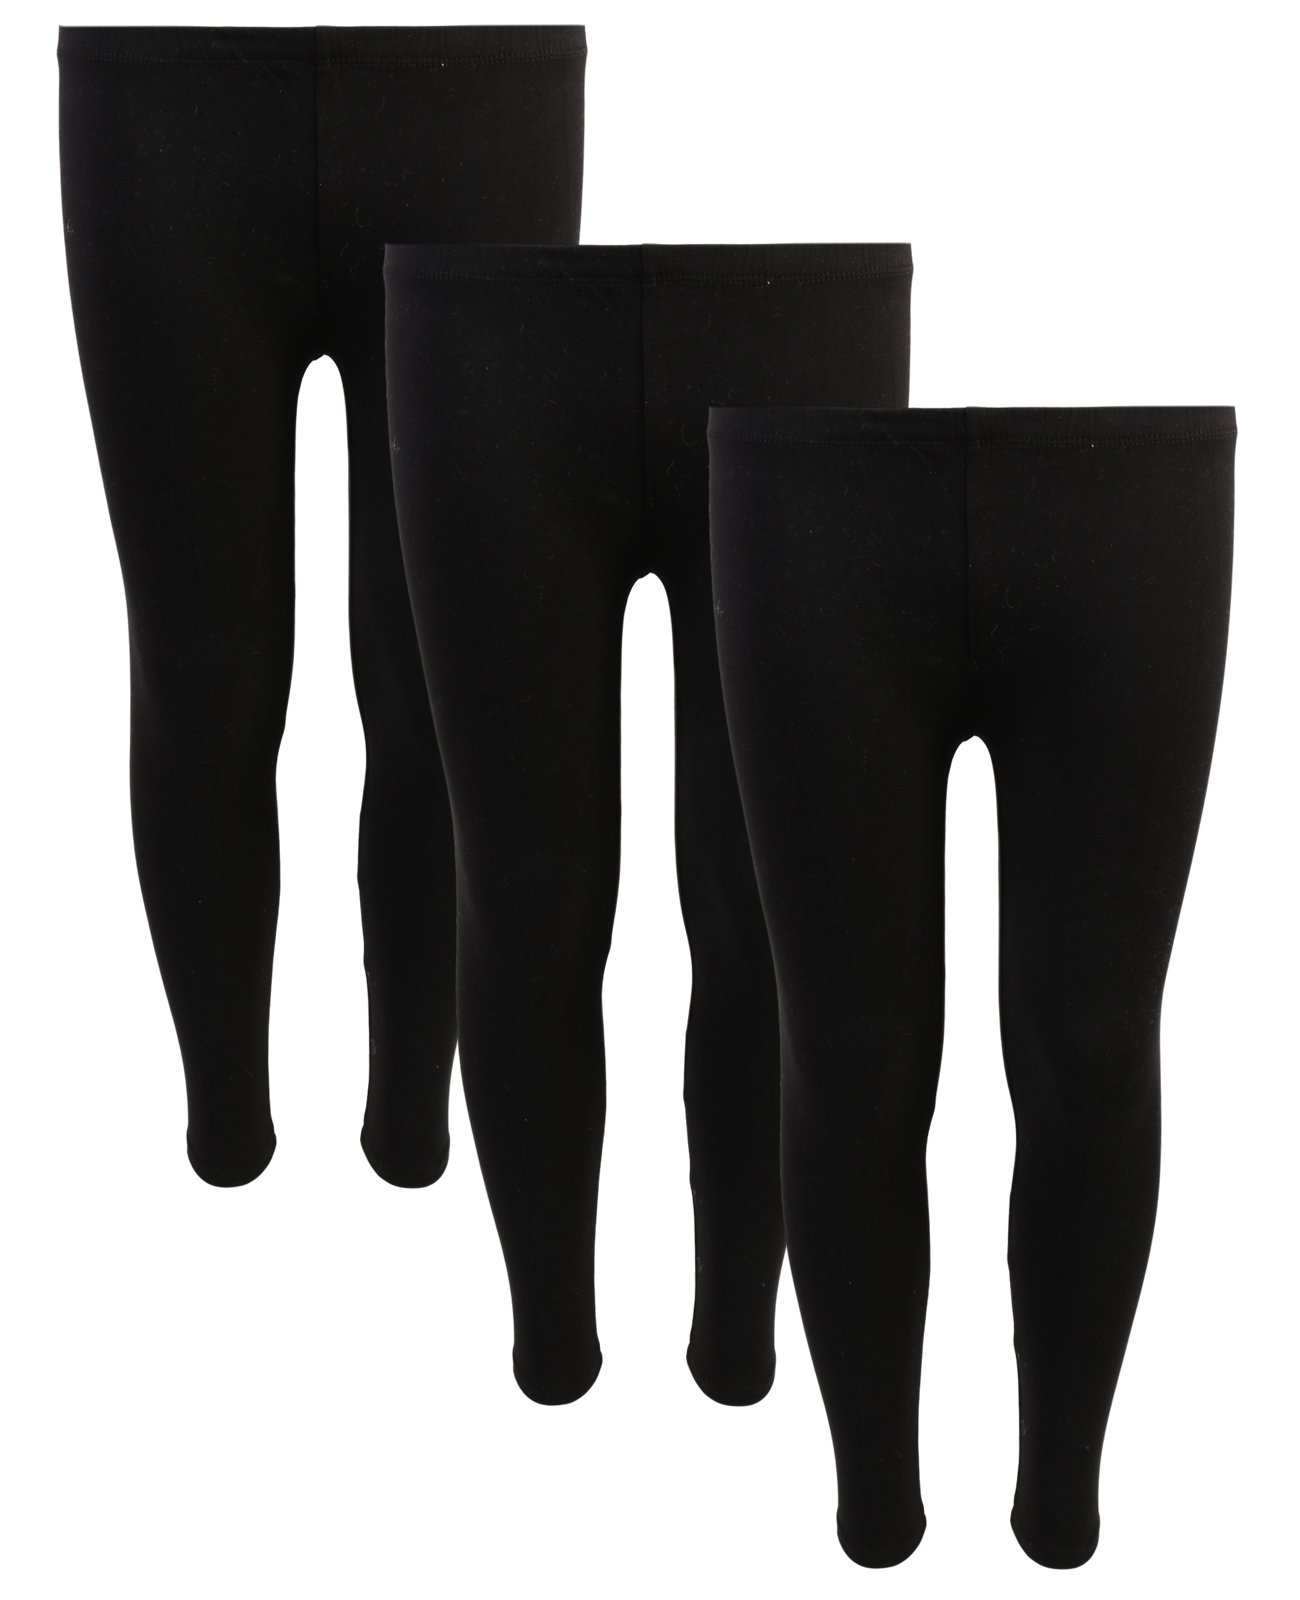 Delia's Girls Solid Leggings (Pack of 3) Black, 10/12